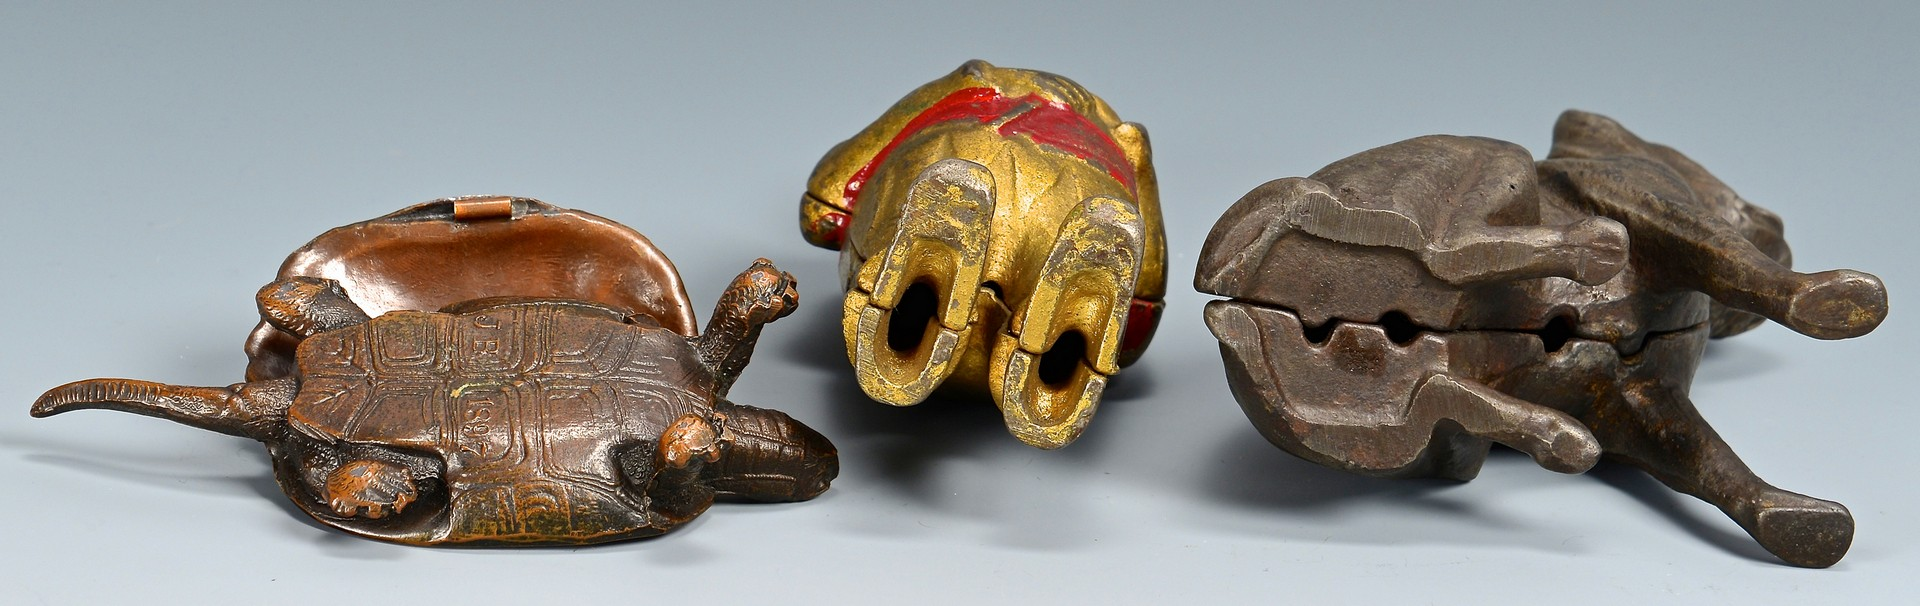 Lot 798: 5 Figural Cast Iron Banks & Bronze Turtle Match Sa